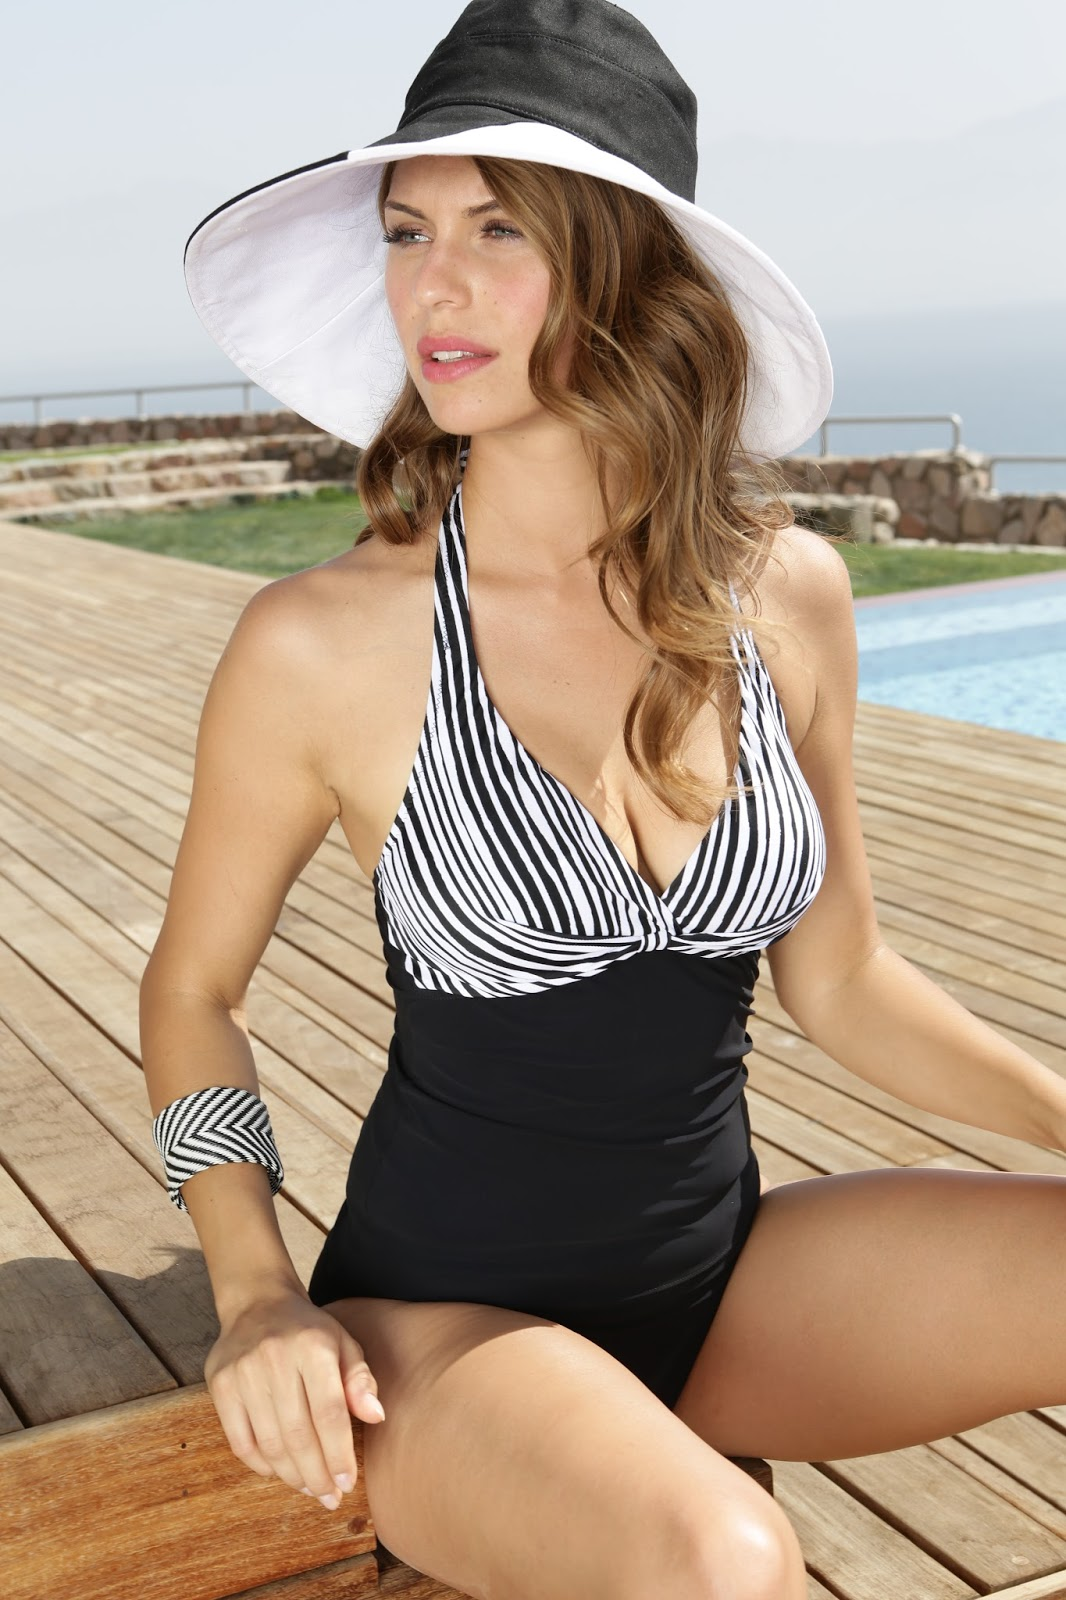 Woman in Sun Hat and Swimsuit